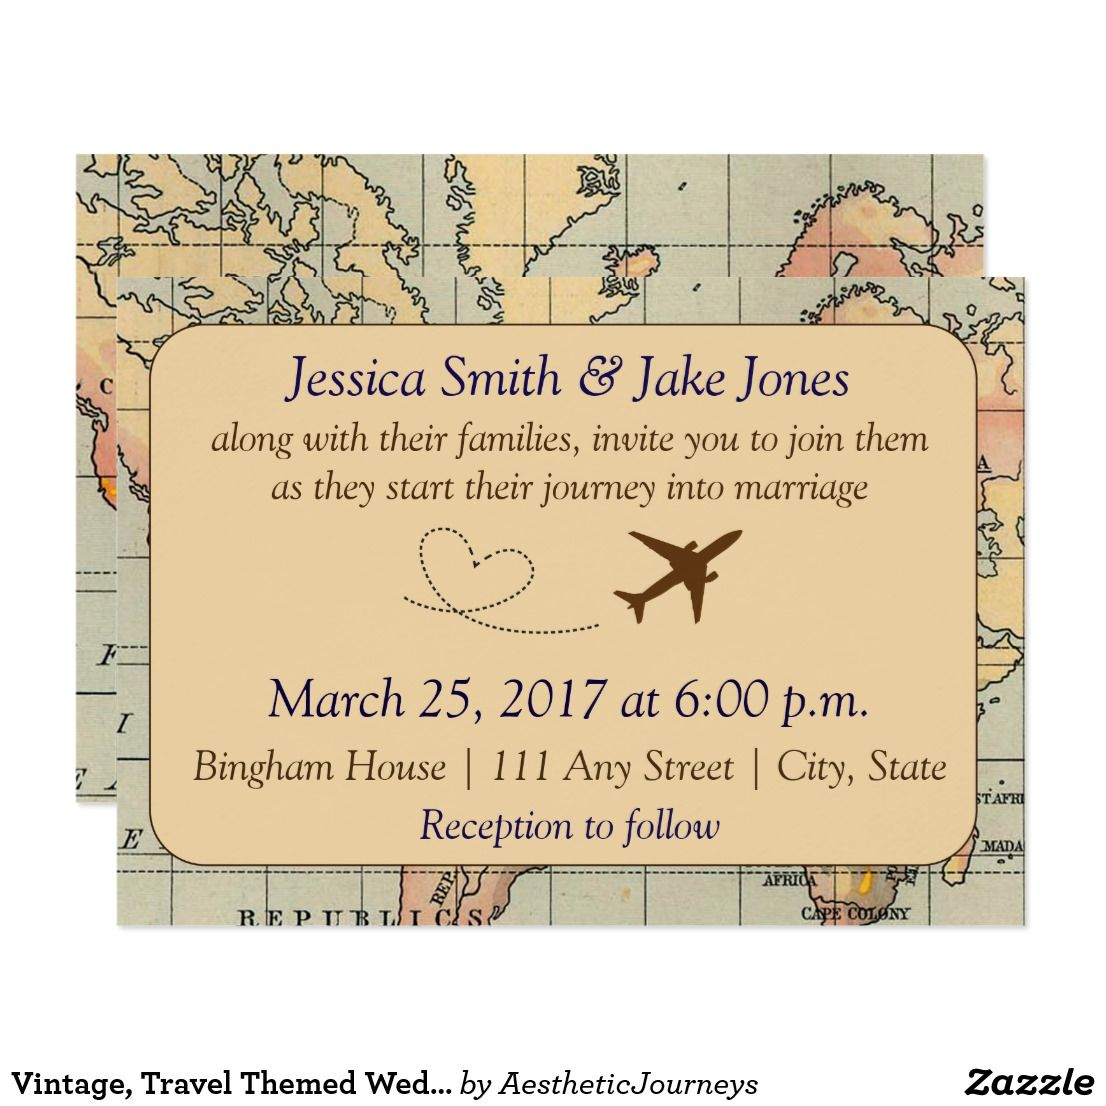 Vintage, Travel Themed Wedding Invite This beautiful travel themed ...